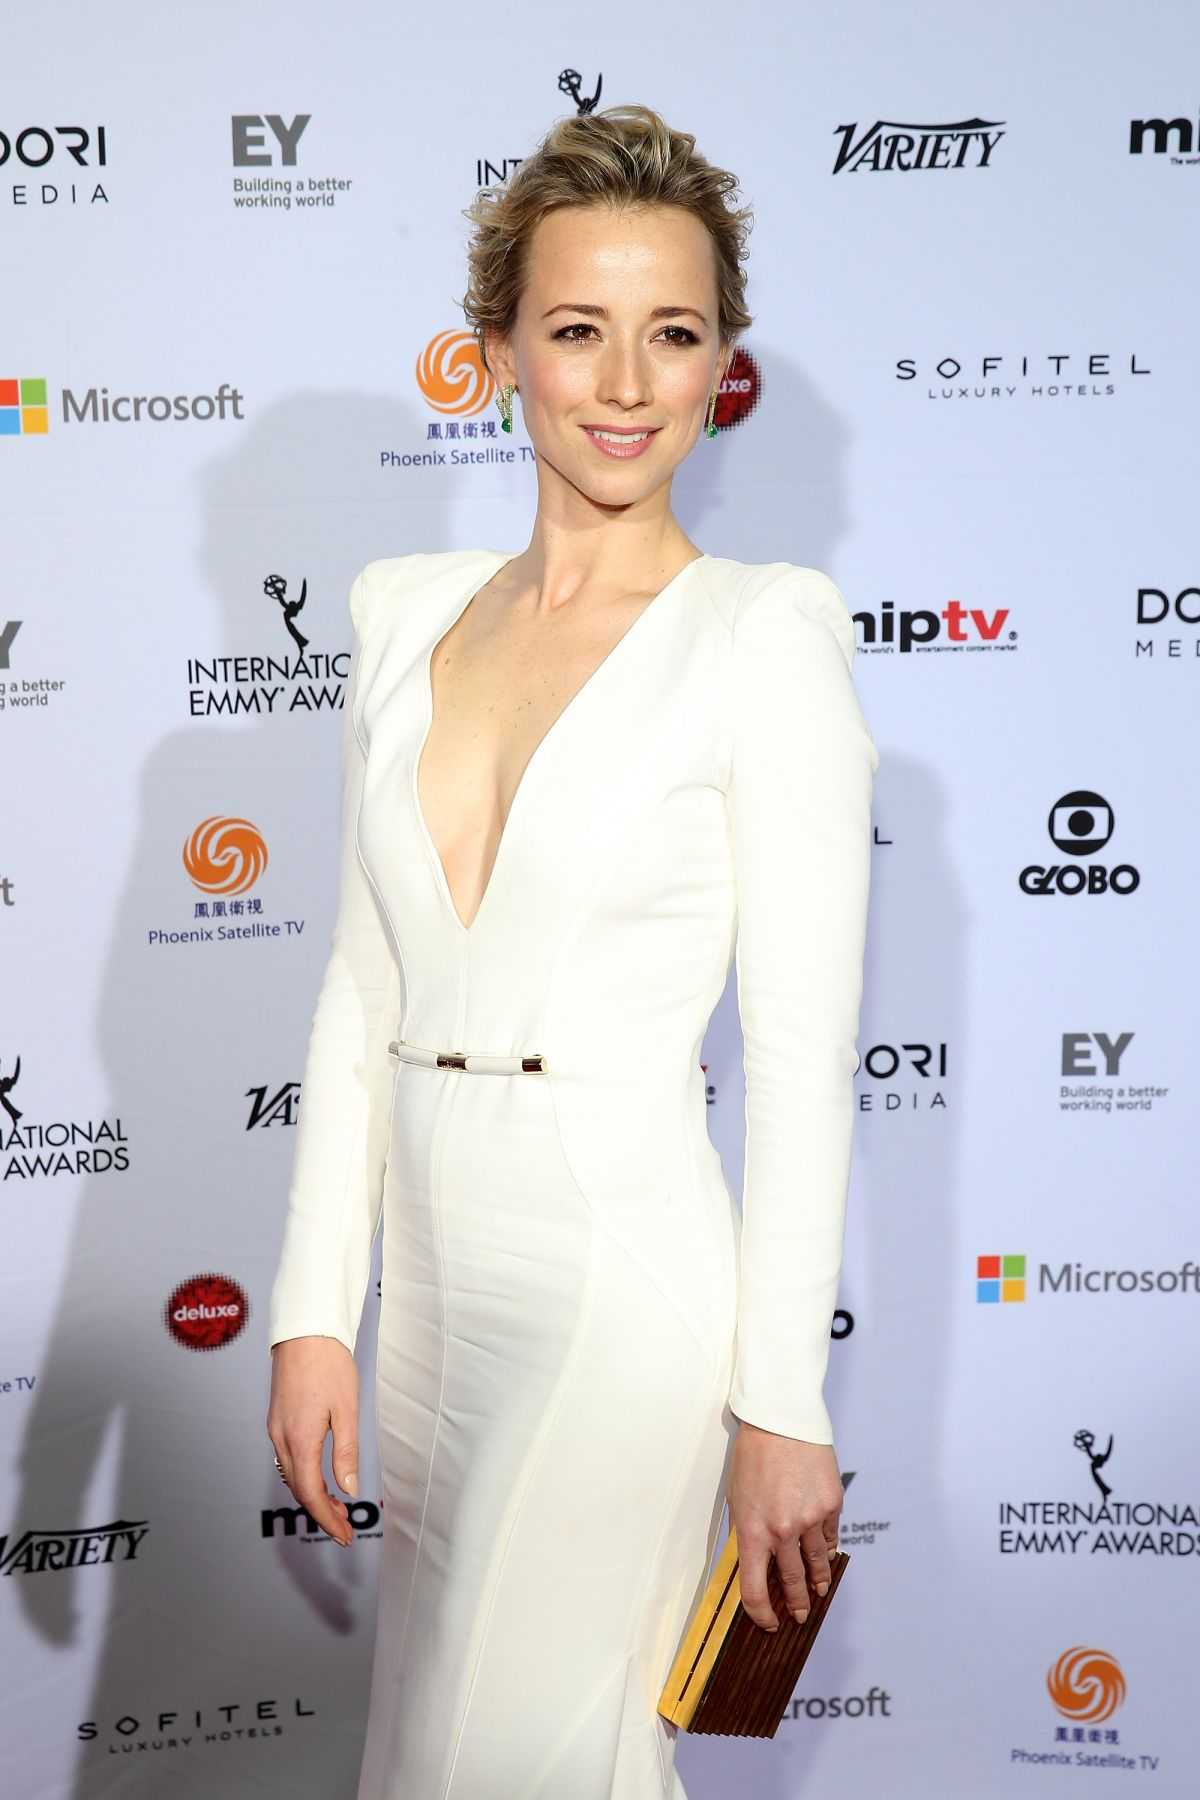 KARINE VANASSE at International Academy of Television Arts & Sciences Emmy Awards in New York